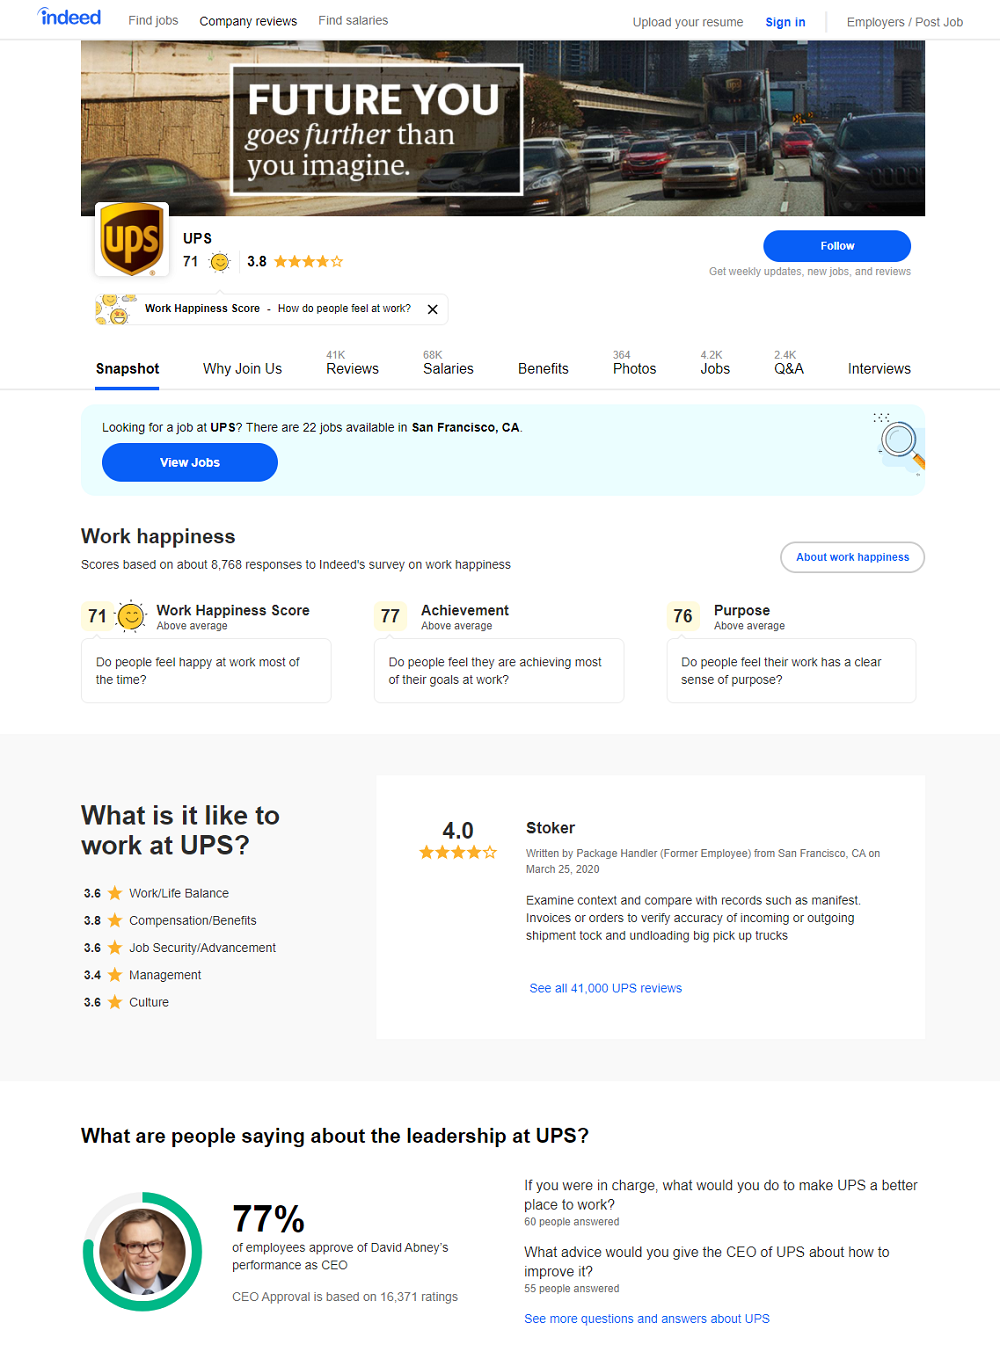 indeed company review page